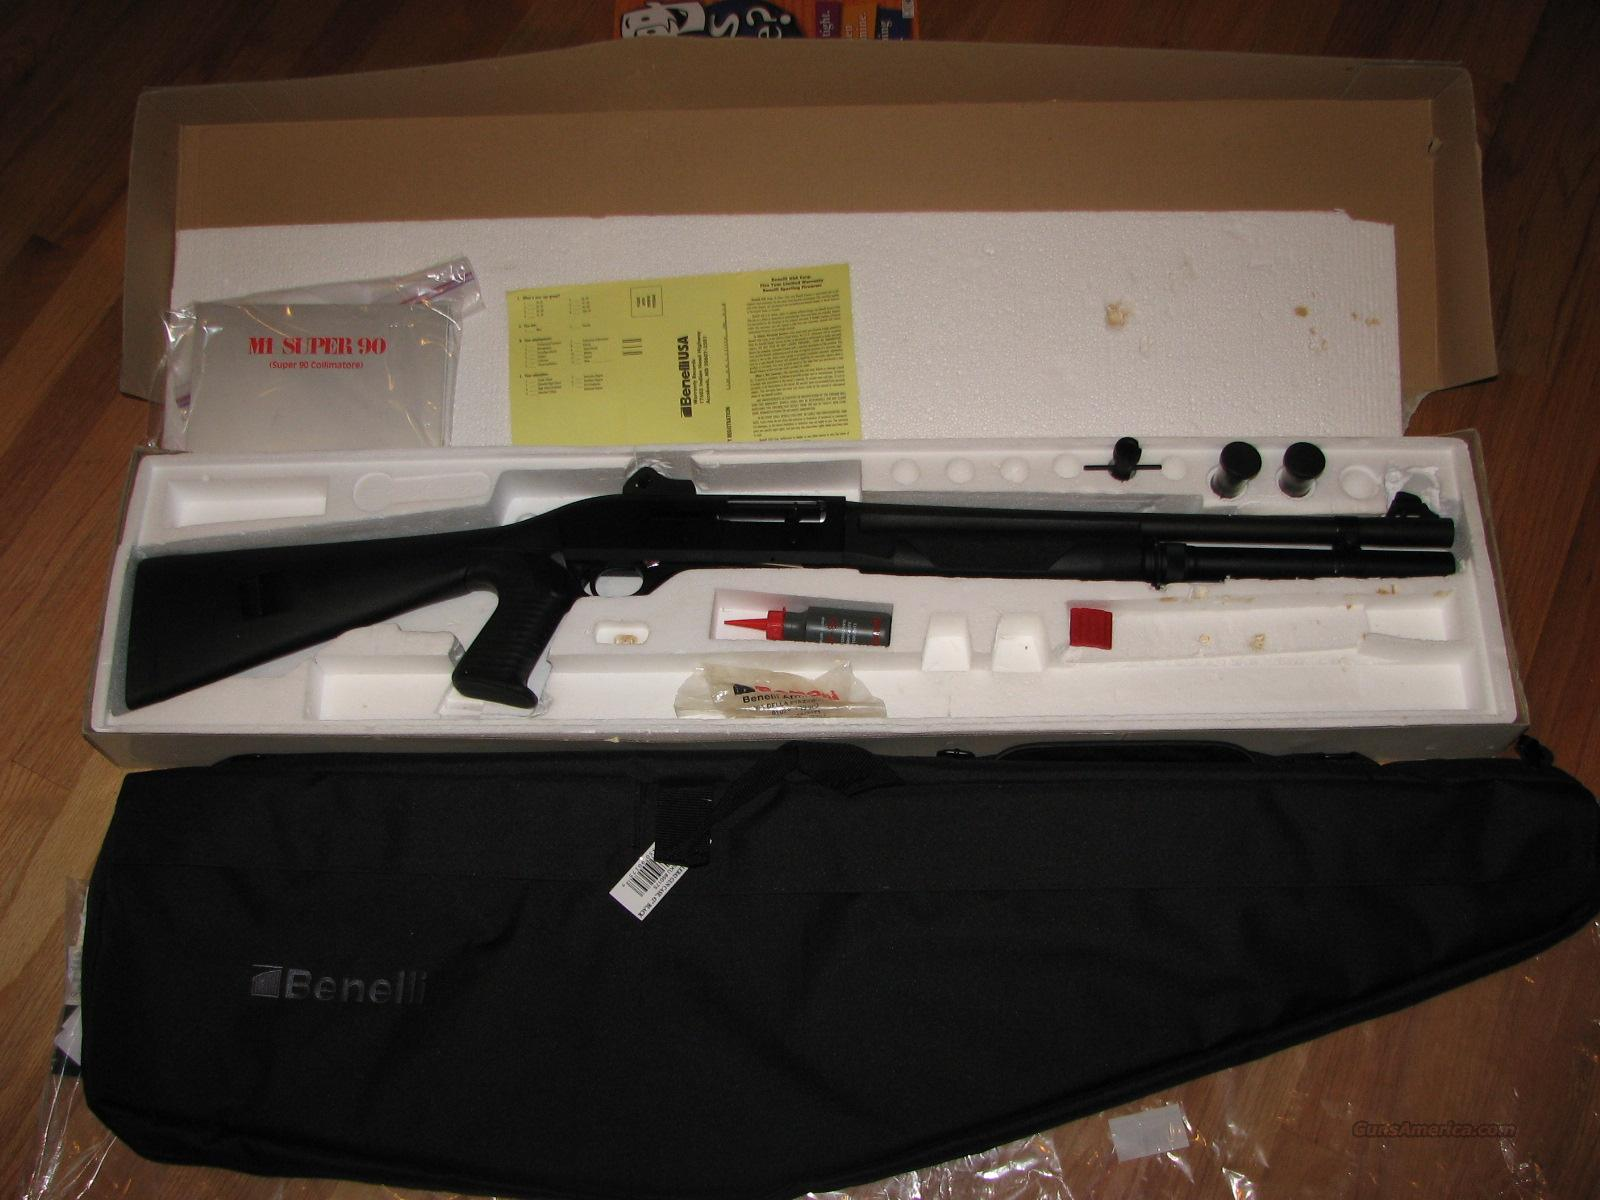 Benelli M-1 Super 90 Semiautomatic with factory pistol grip  Guns > Shotguns > Benelli Shotguns > Tactical